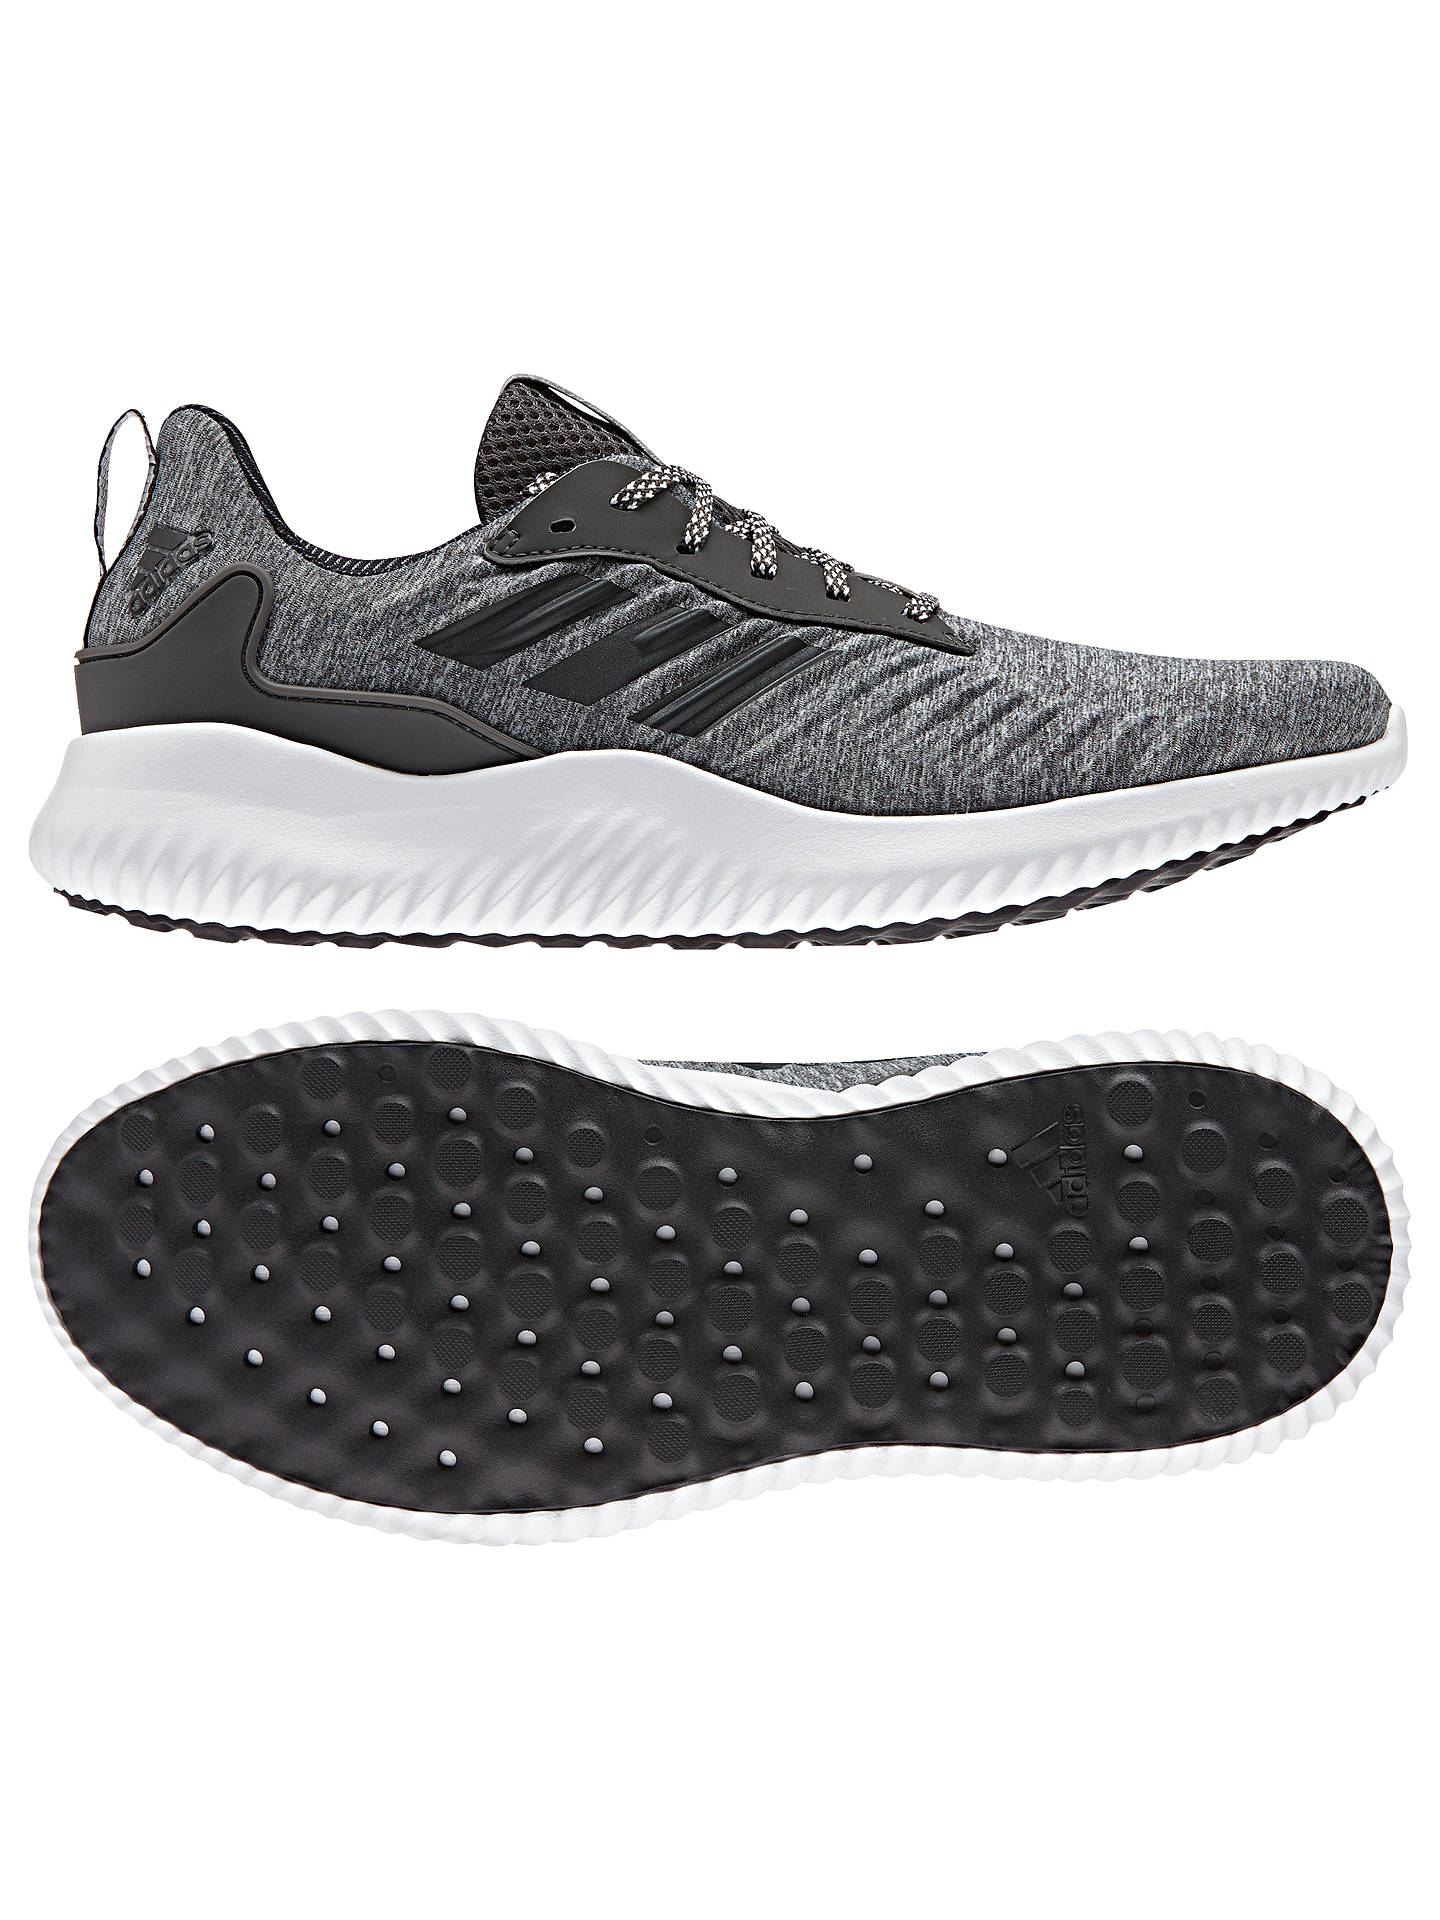 Adidas Alphabounce RC Men's Running Shoes, Dark Grey Heather